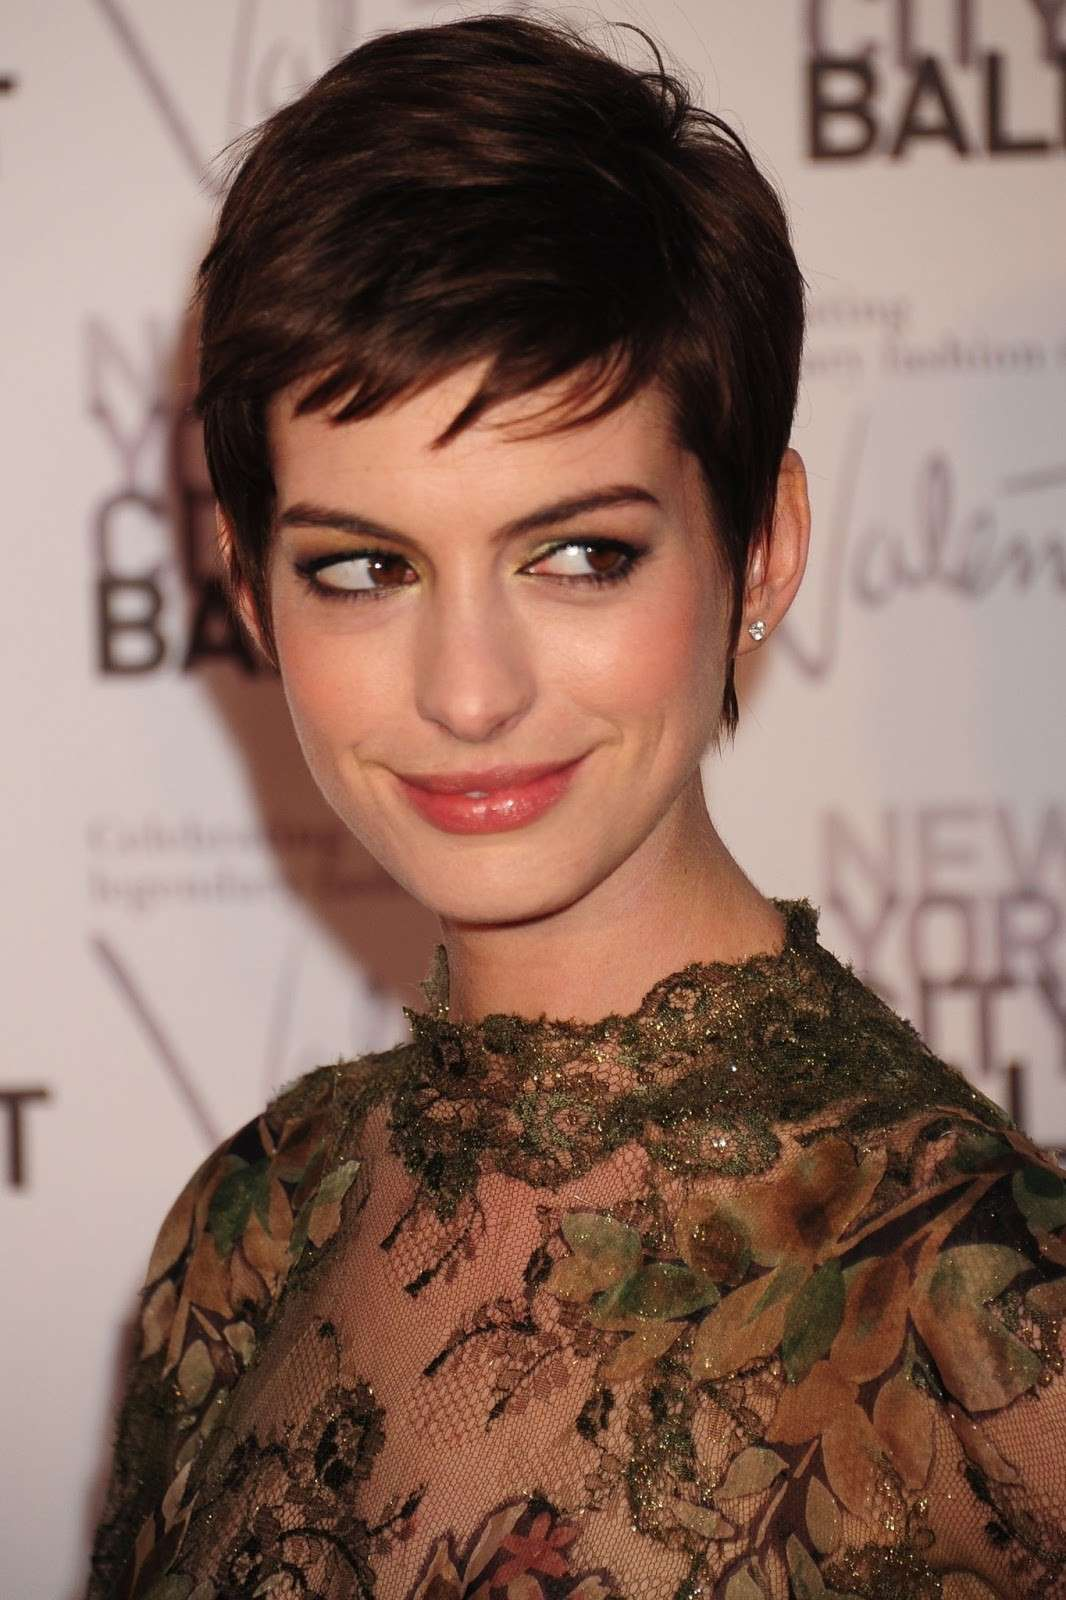 Trucco per occhi grandi: Make up Anne Hathaway